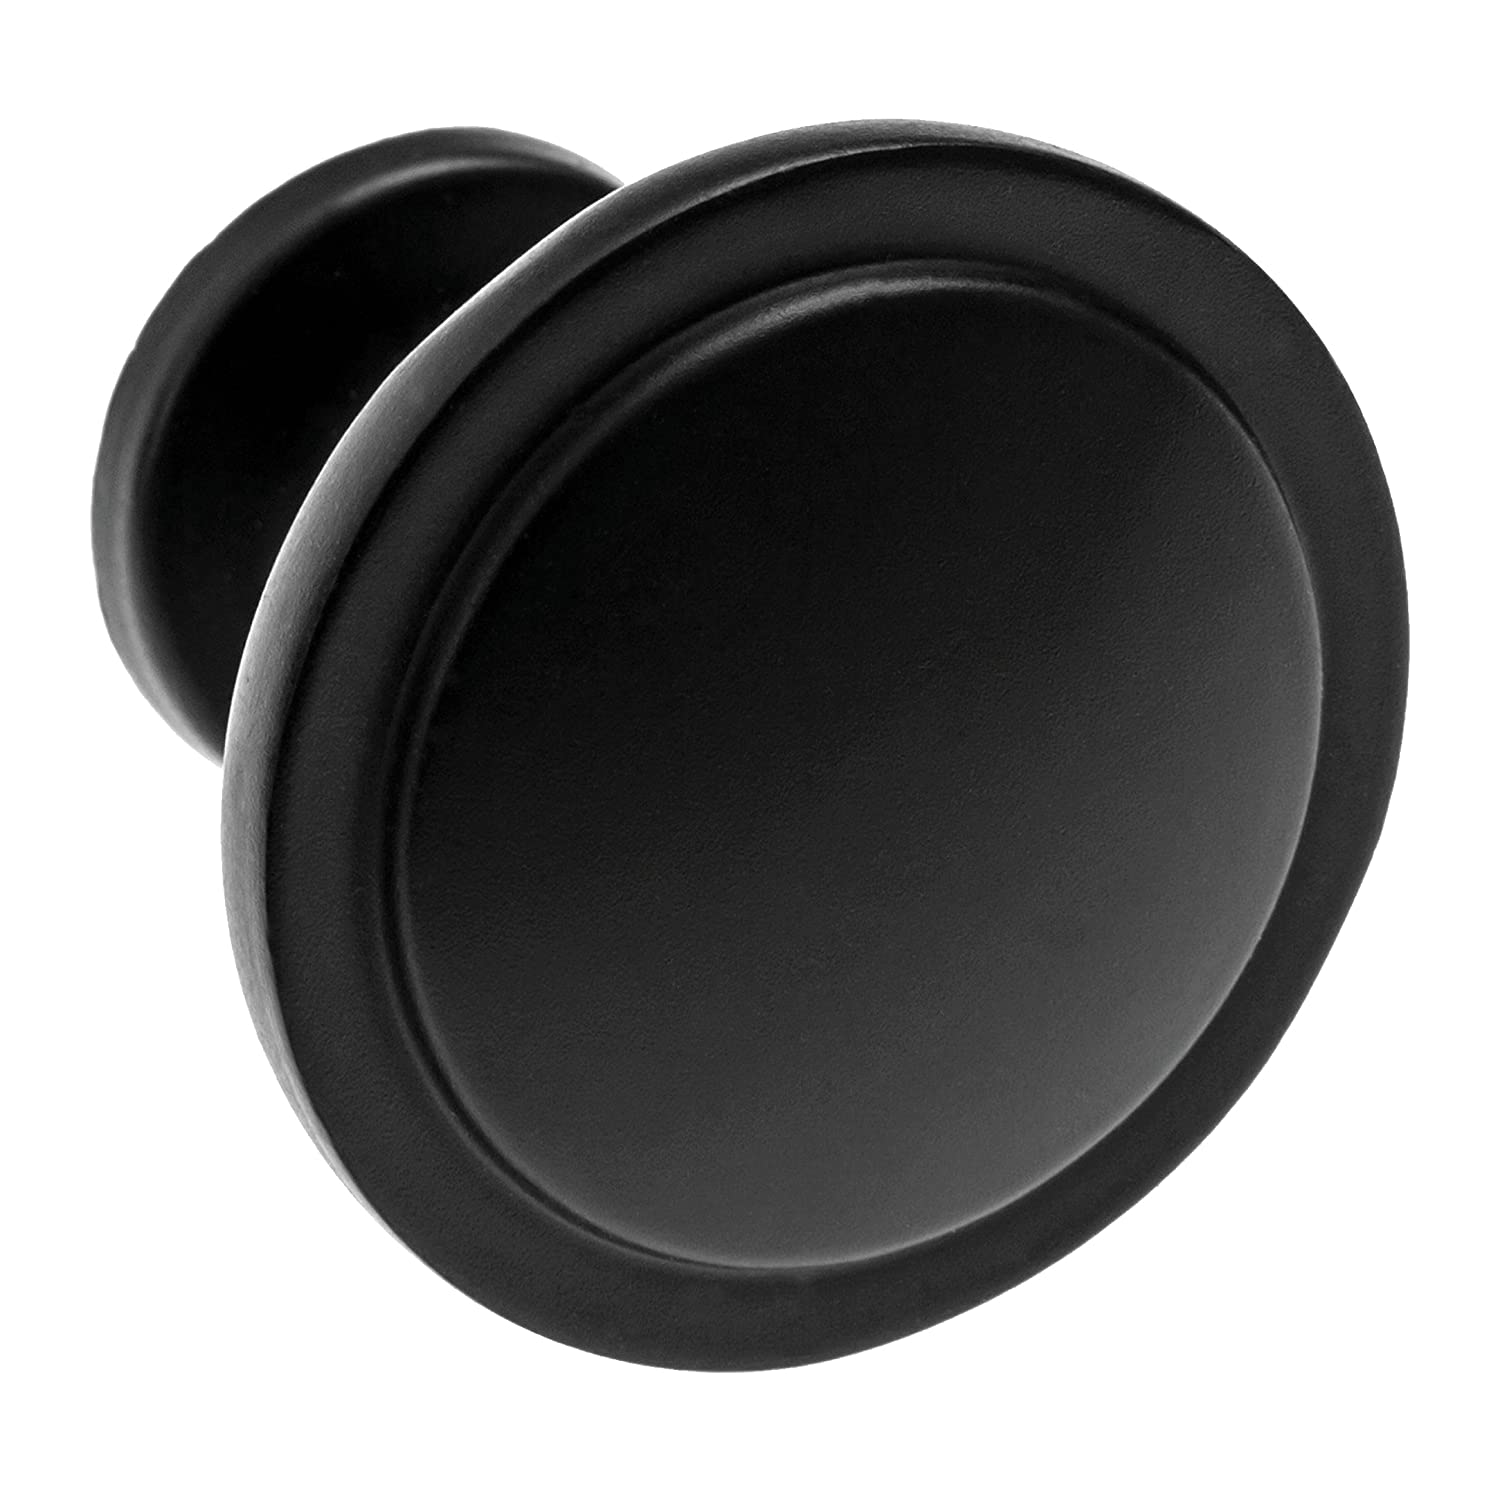 """26 Beautiful Cabinet knobs Flat Black (26) Pack - Round Solid Metal knobs - Free Hardware Screws for Doors and Drawers - 1-1/4"""" Diameter"""